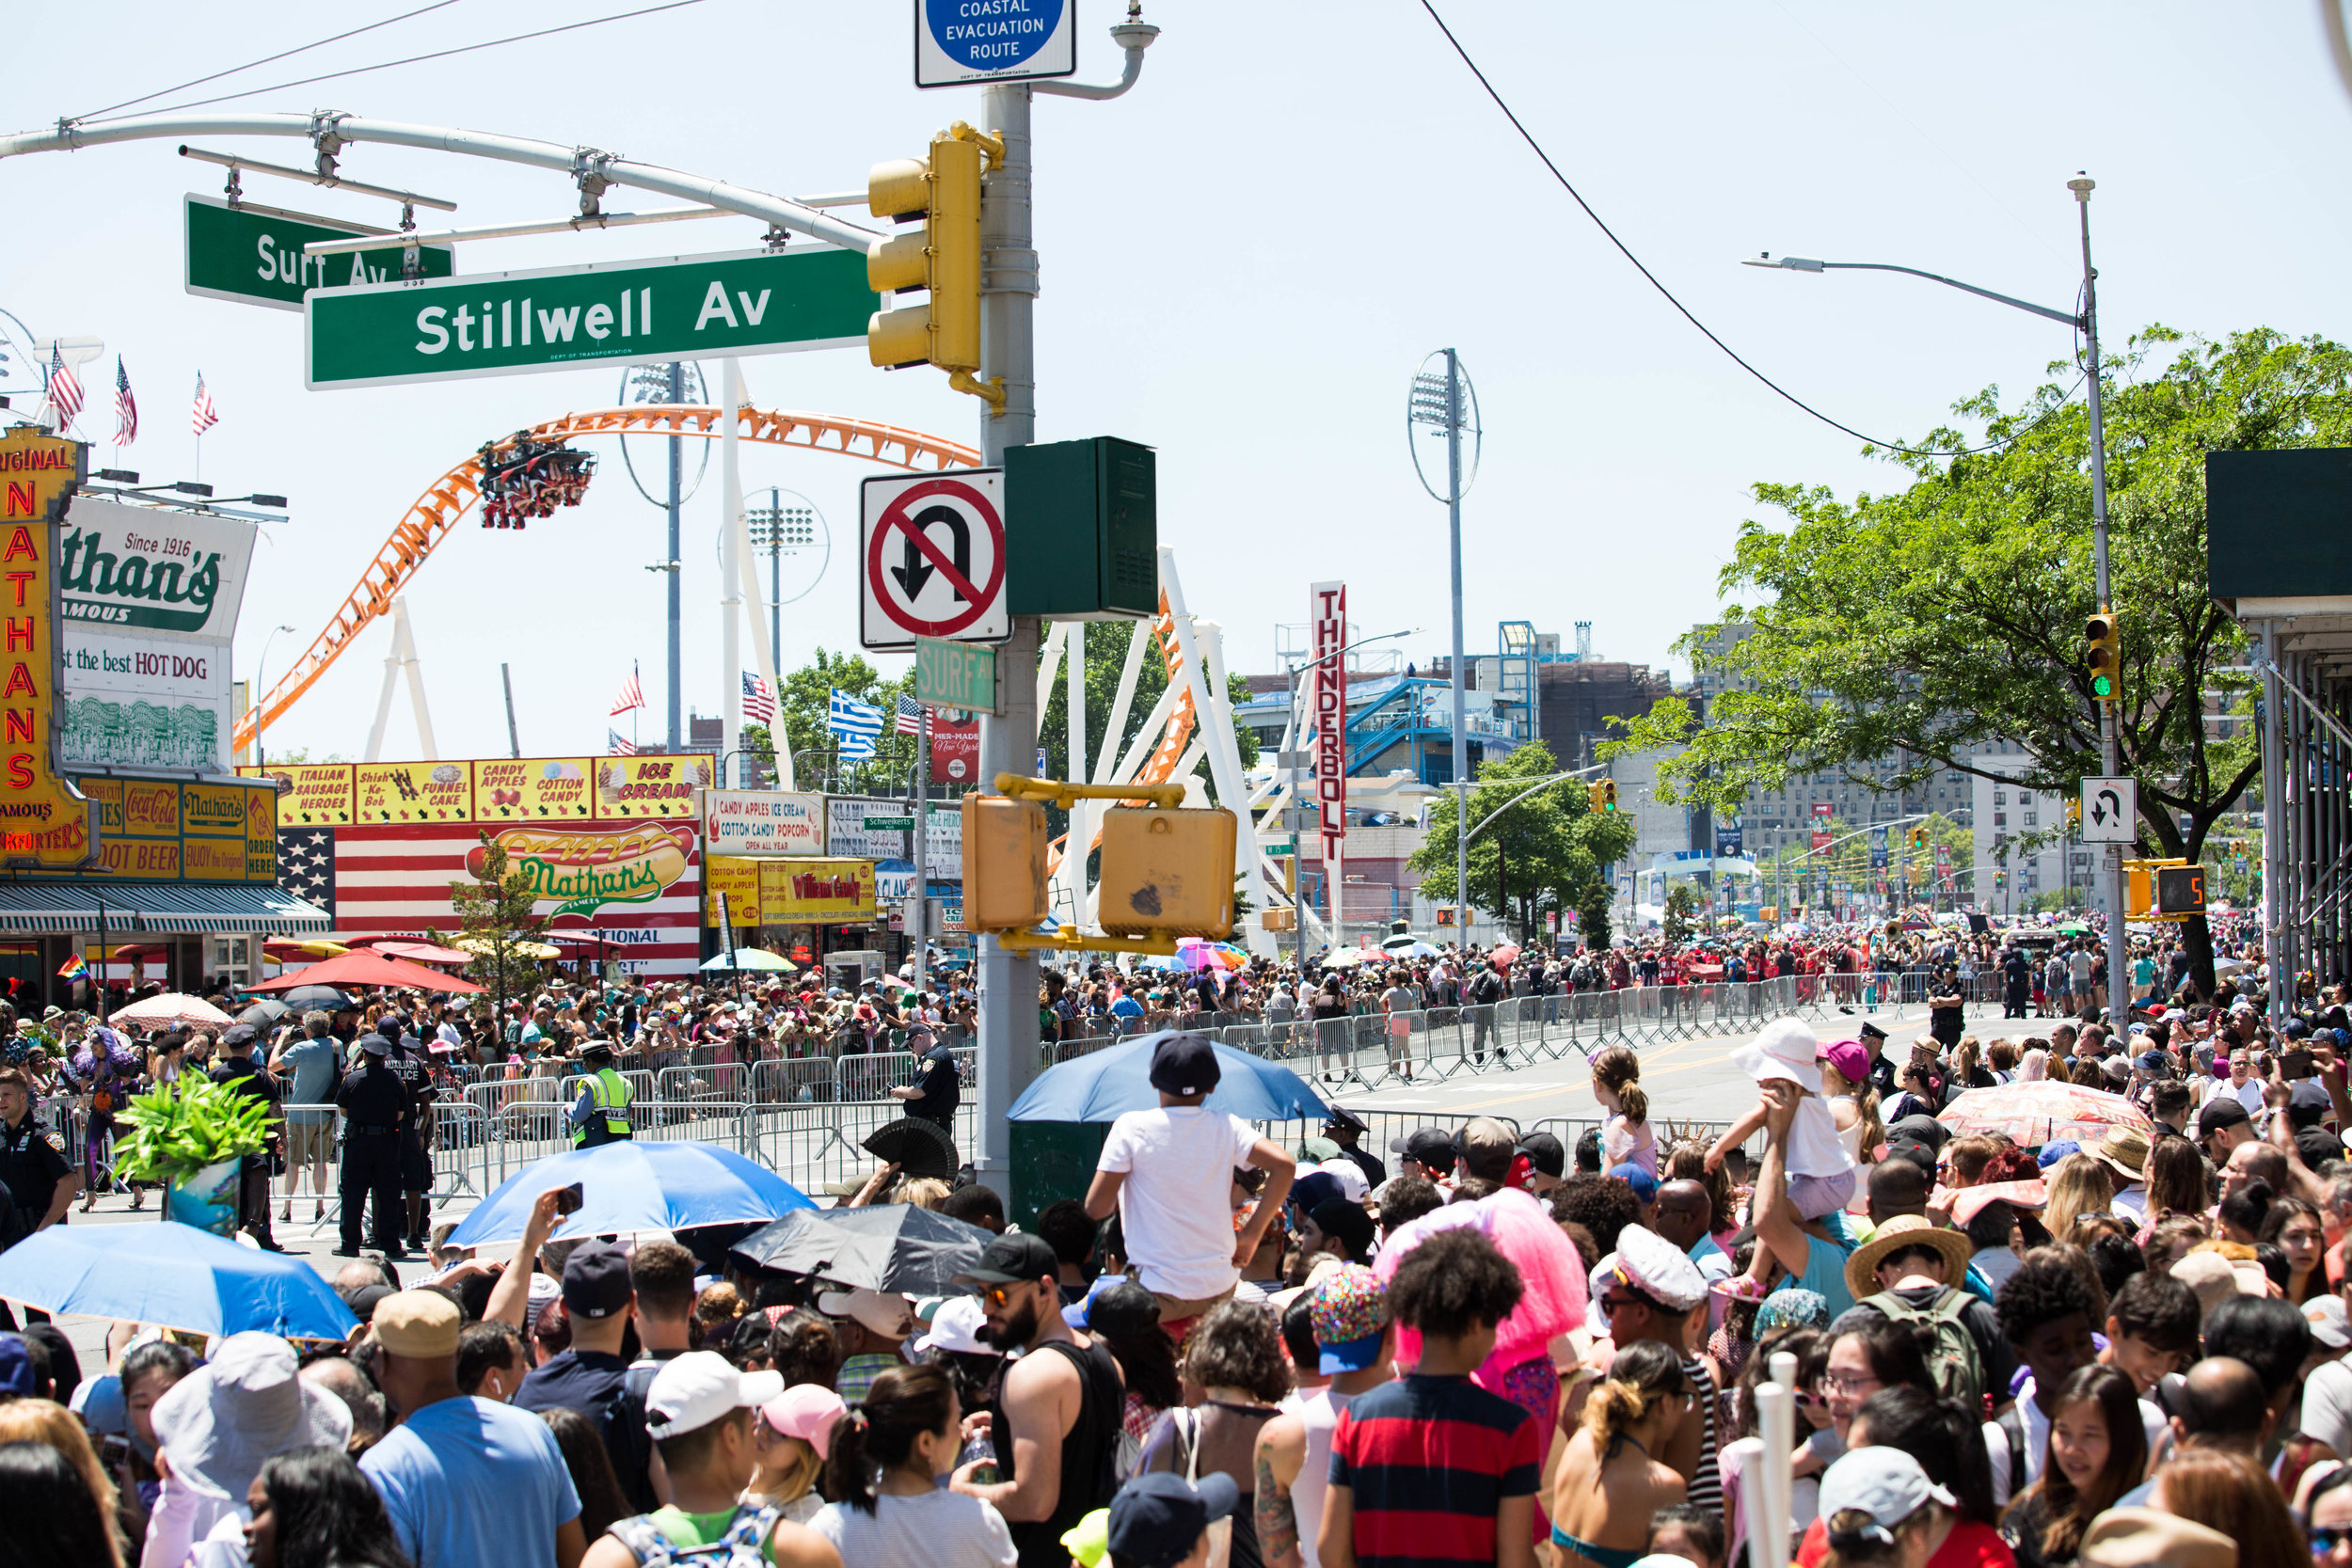 Mermaids and spectators attending Coney Island's 36th anual Mermaid Day Parade, on Saturday June 16, in New York. Photo: Wes Parnell